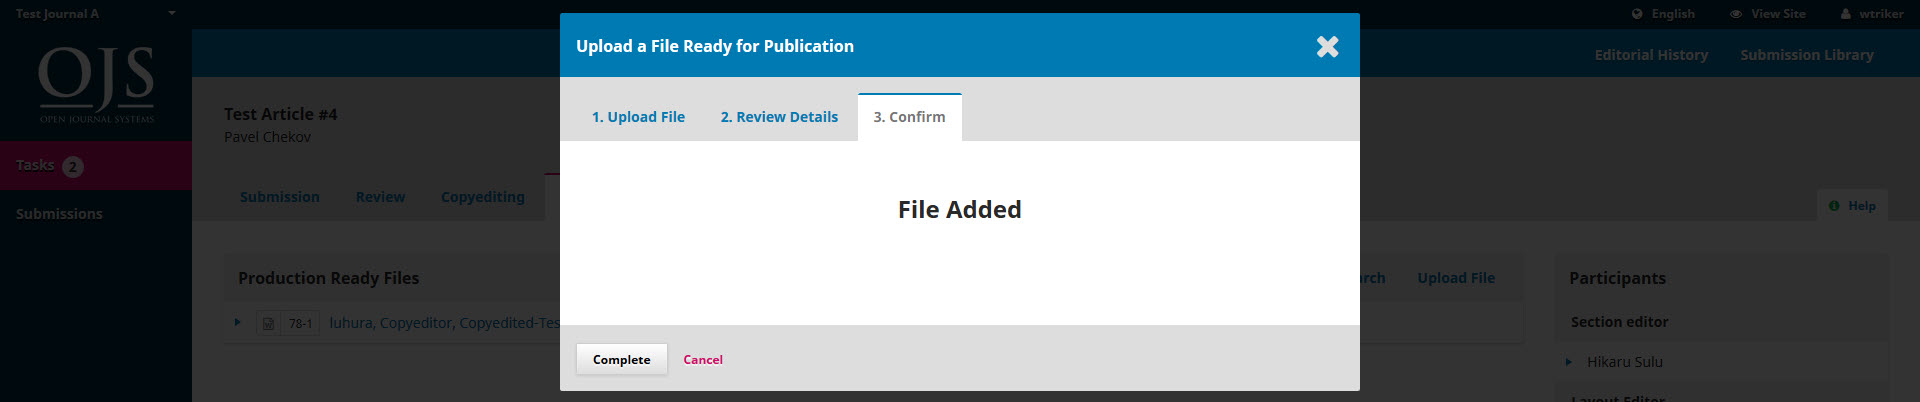 ojs3-layout-editor-production-galleys-upload-confirm